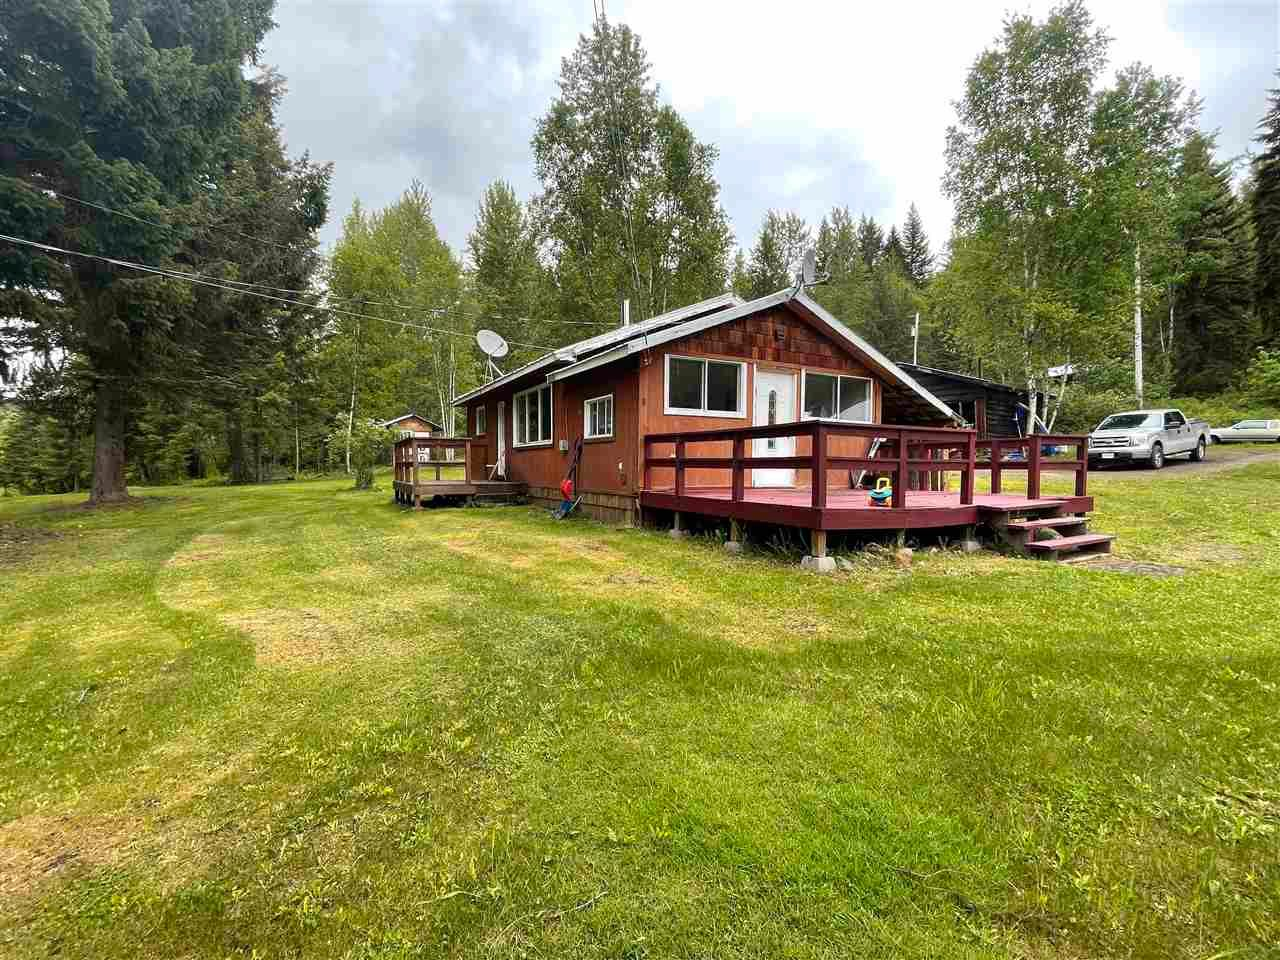 Main Photo: 6170 CEDAR CREEK Road: Likely House for sale (Williams Lake (Zone 27))  : MLS®# R2591888